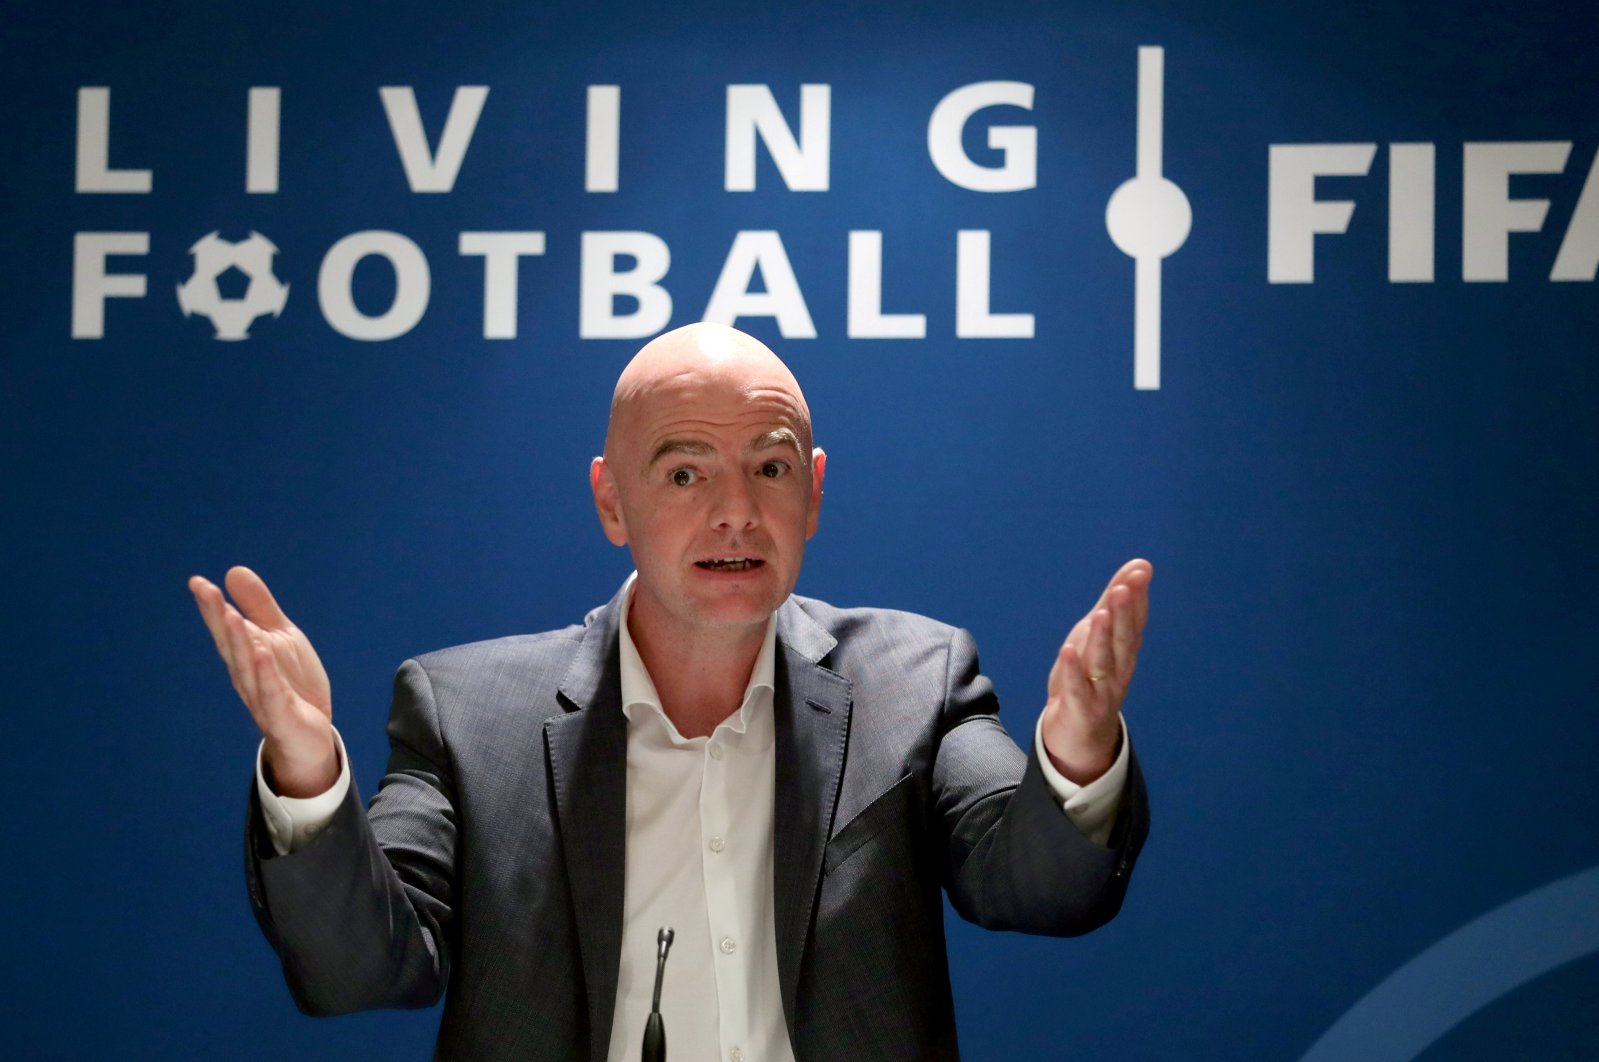 FIFA President Gianni Infantino speaks during a panel discussion at the FIFA headquarters in Zurich, Switzerland, Sept. 30, 2020. (Reuters Photo)